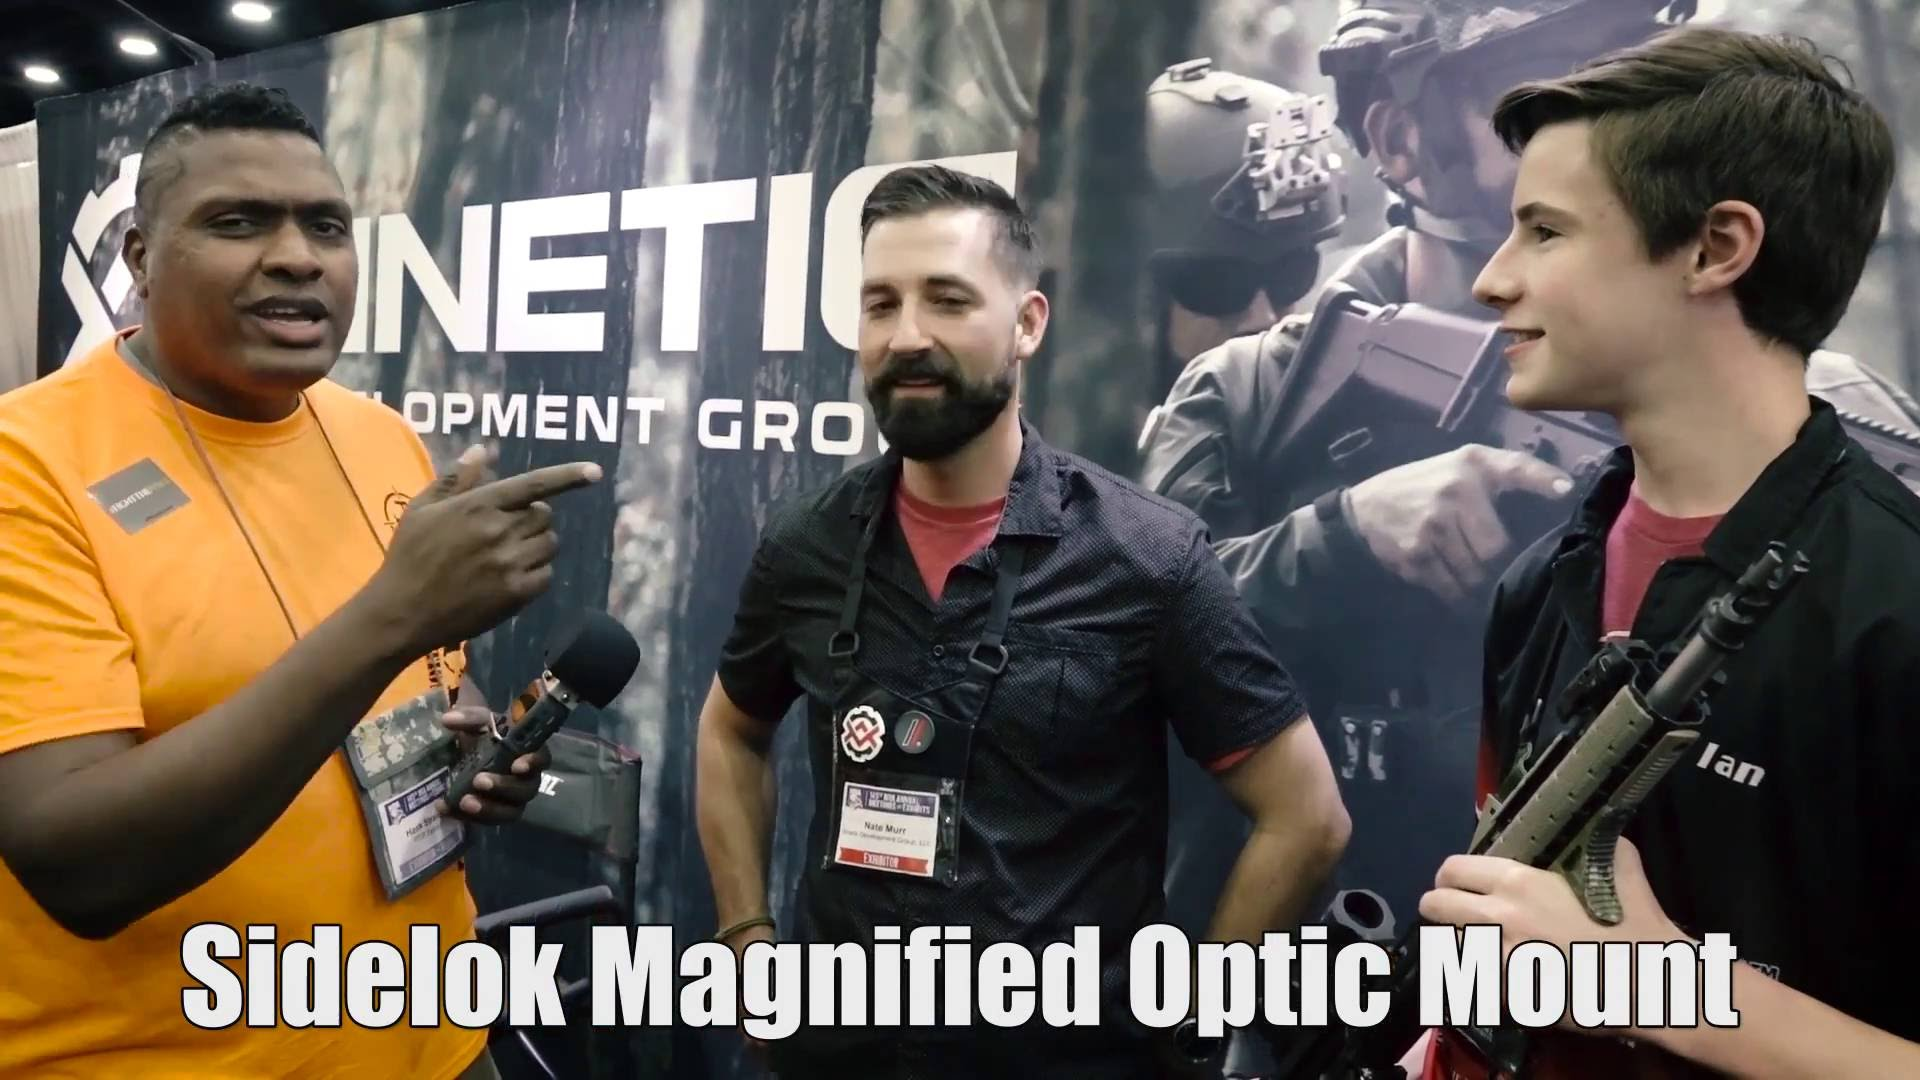 Sidelok Magnified Optic Mount NRA 2016